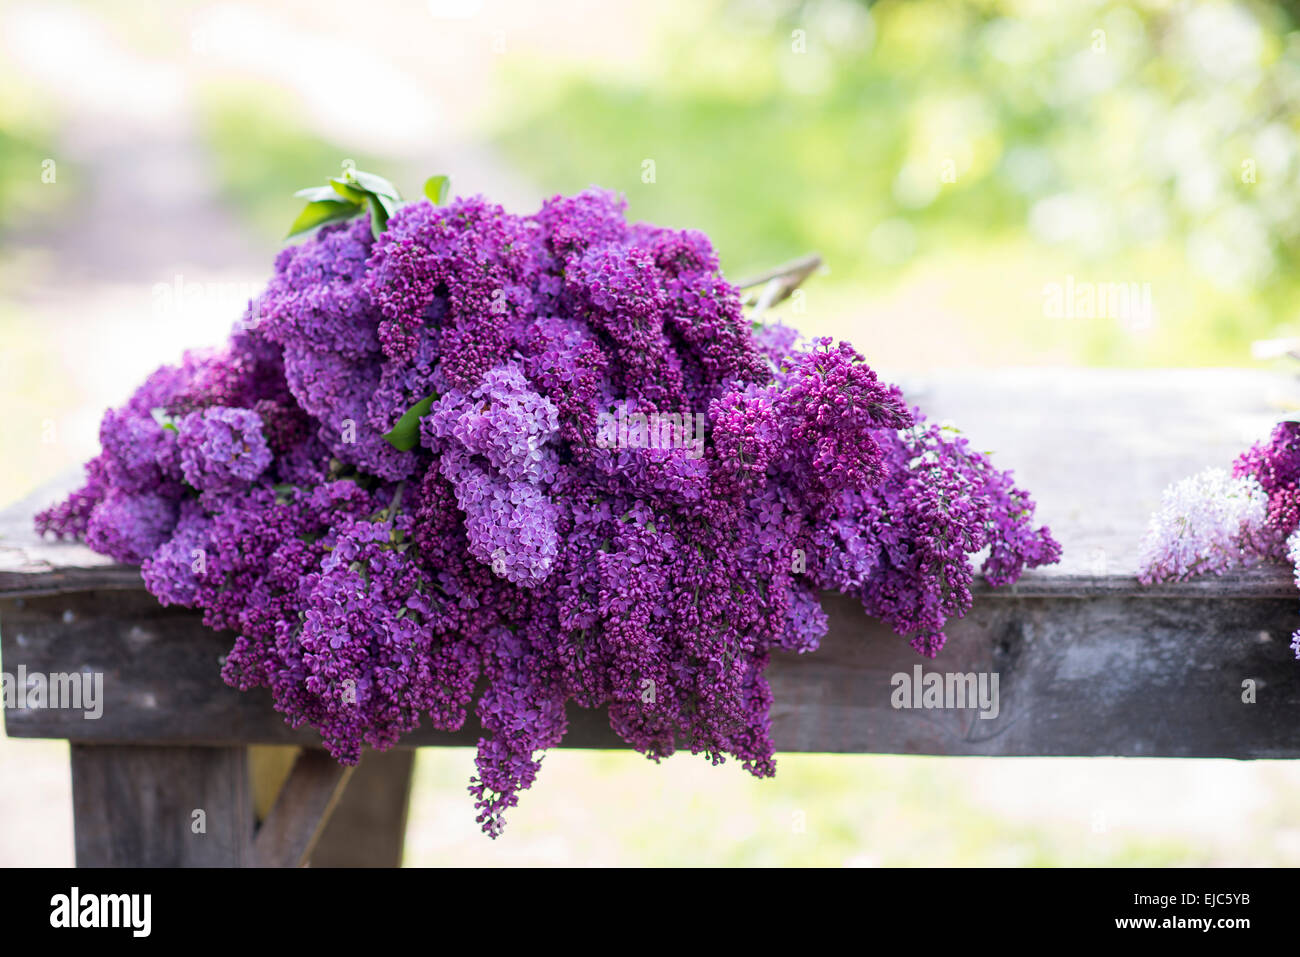 Cut stems of lilac blossoms (Syringa vulgaris) in spring - Stock Image